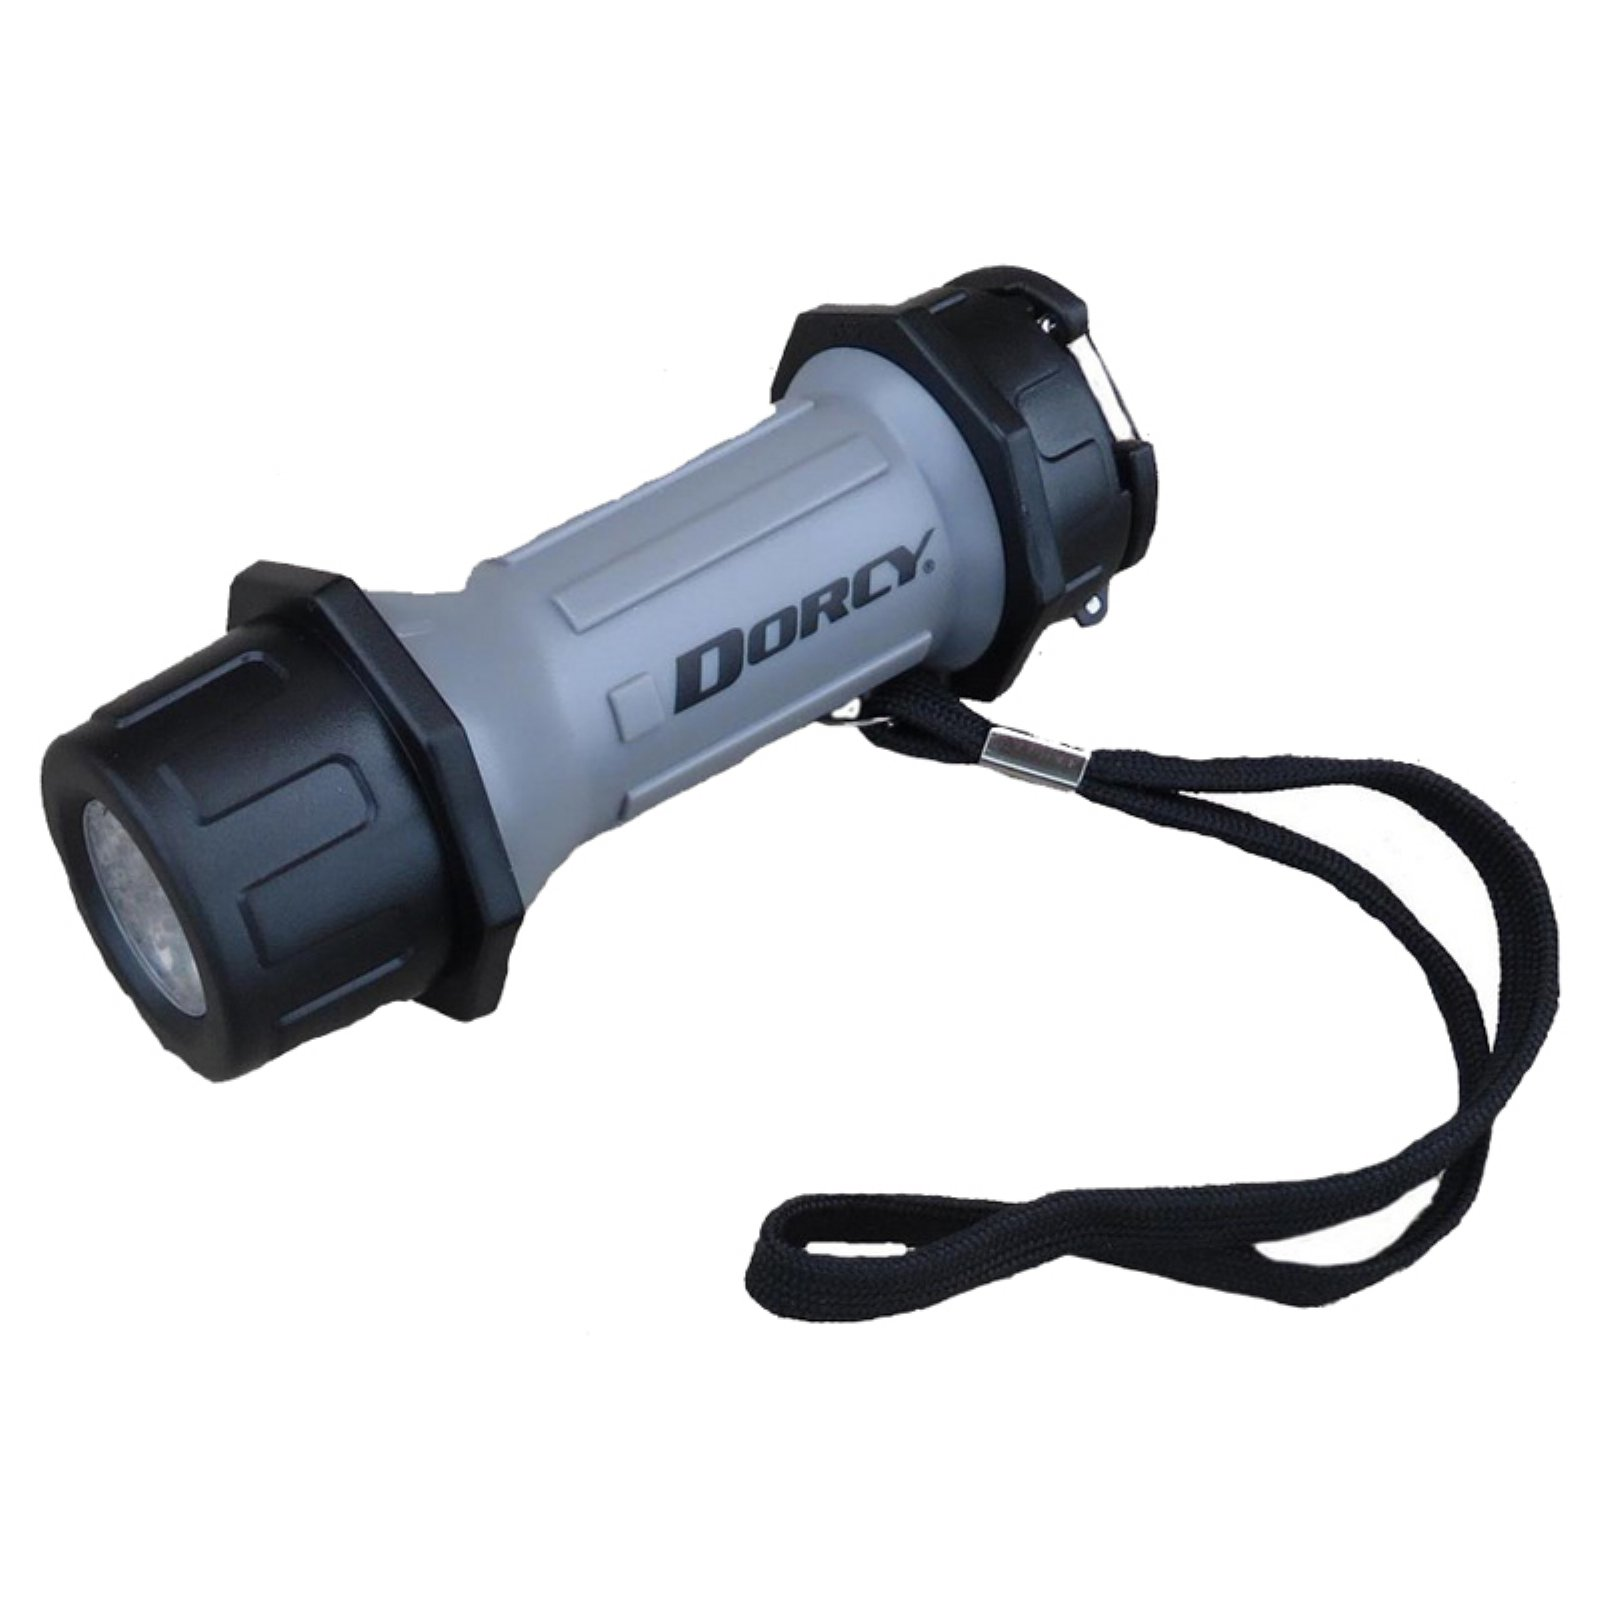 Dorcy 41-2602 3AAA LED Industrial Flashlight